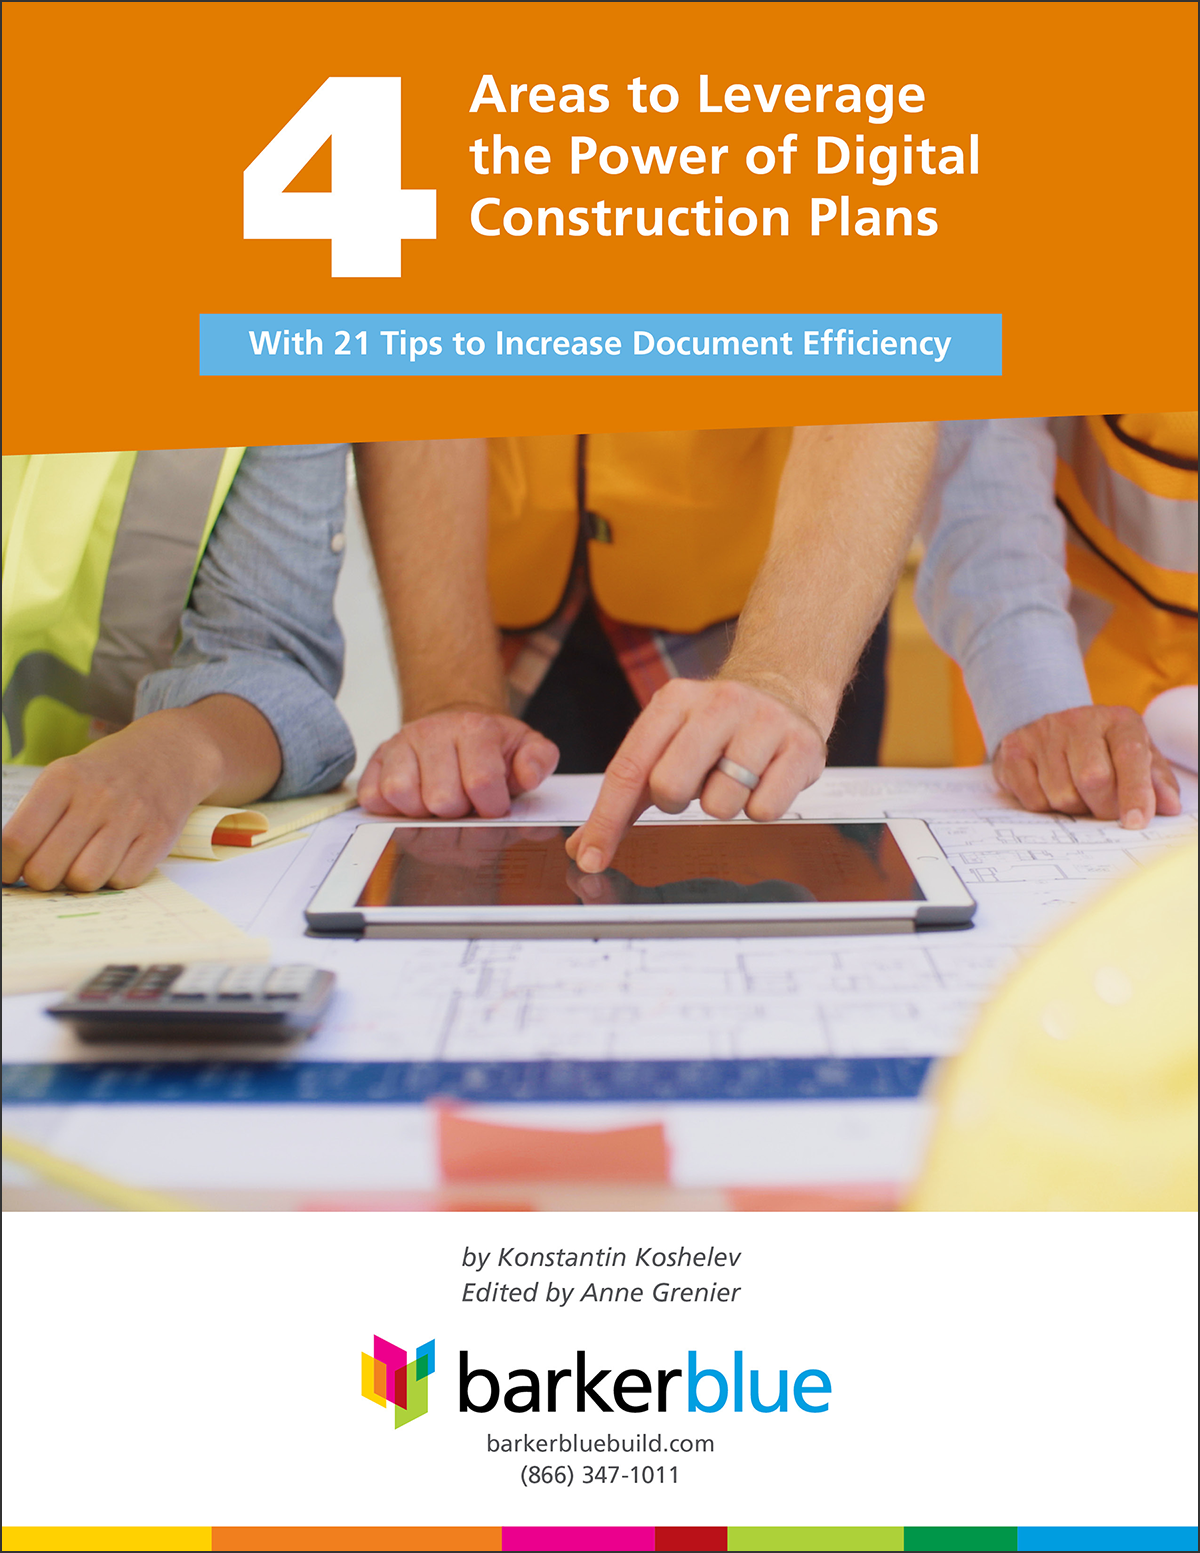 4 Areas to Leverage Digital Construction Plans